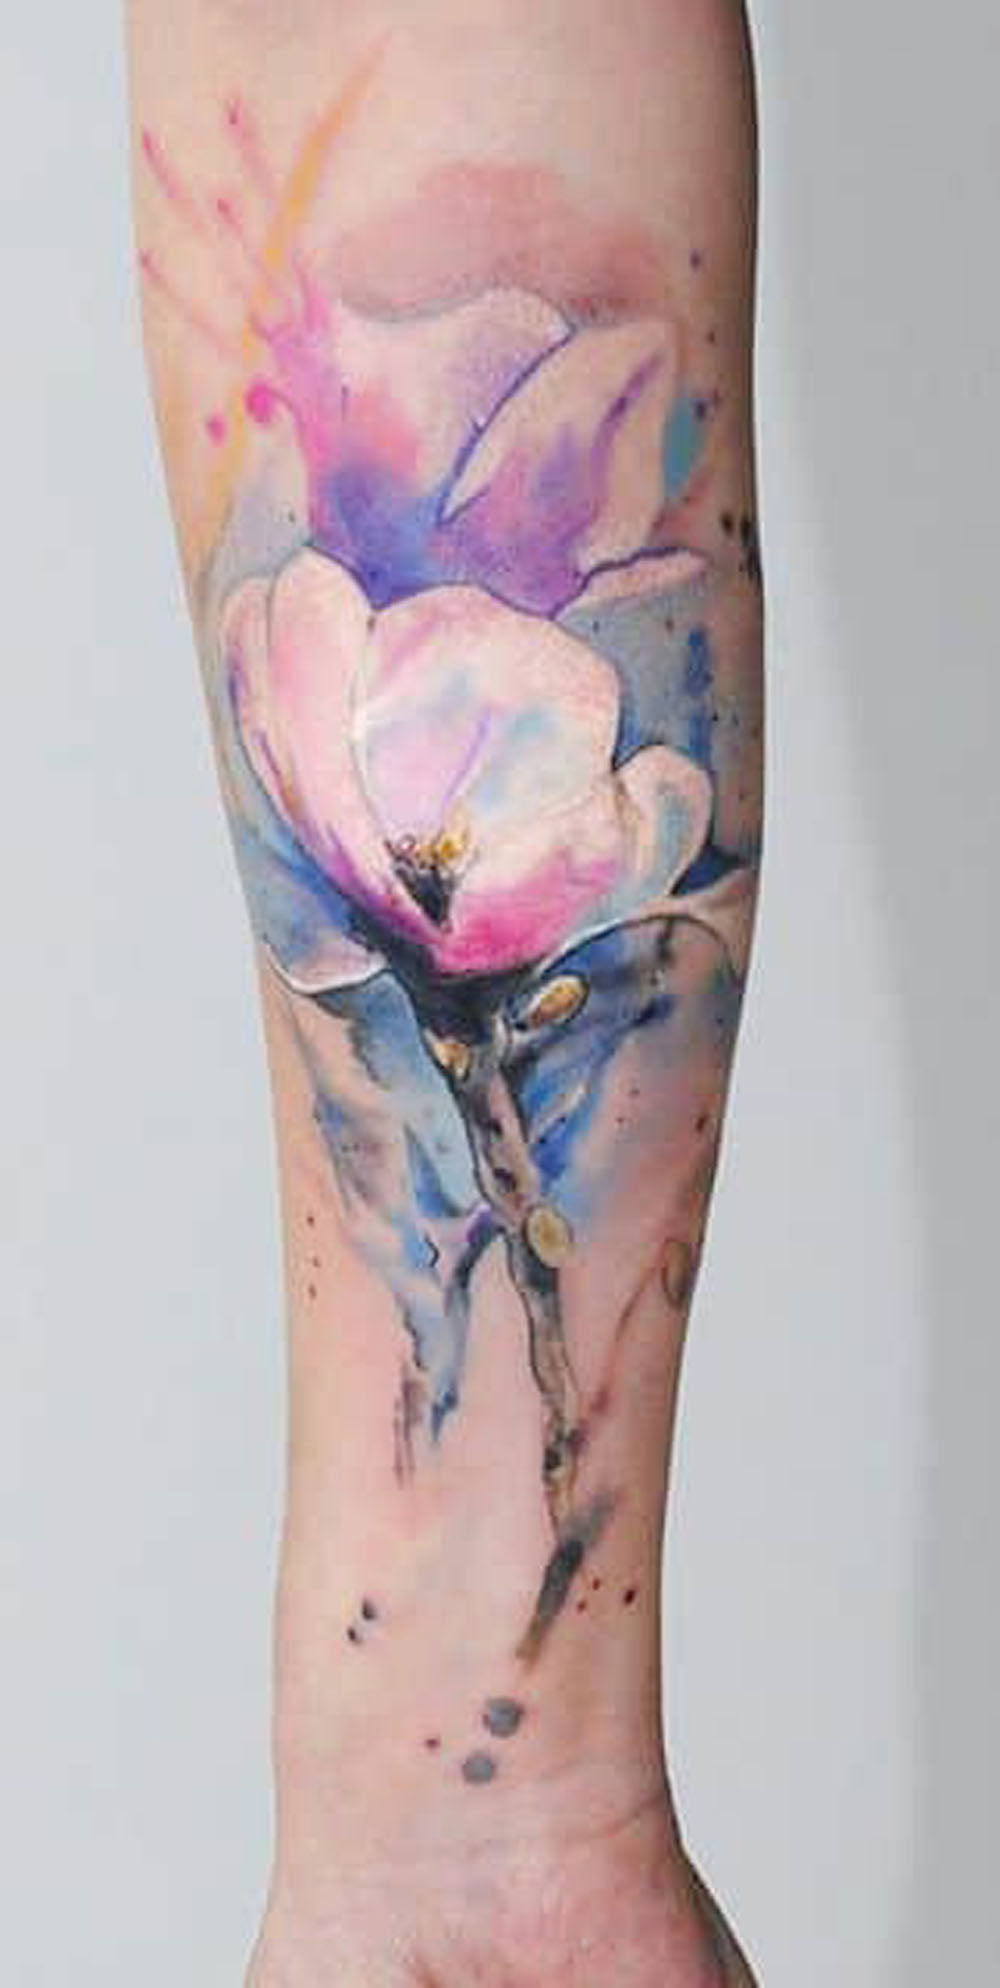 Beautiful Watercolor Jasmine Flower Forearm Arm Sleeve Tattoo Ideas for Women -  ideas de tatuaje de manga de brazo de flor - www.MyBodiArt.com